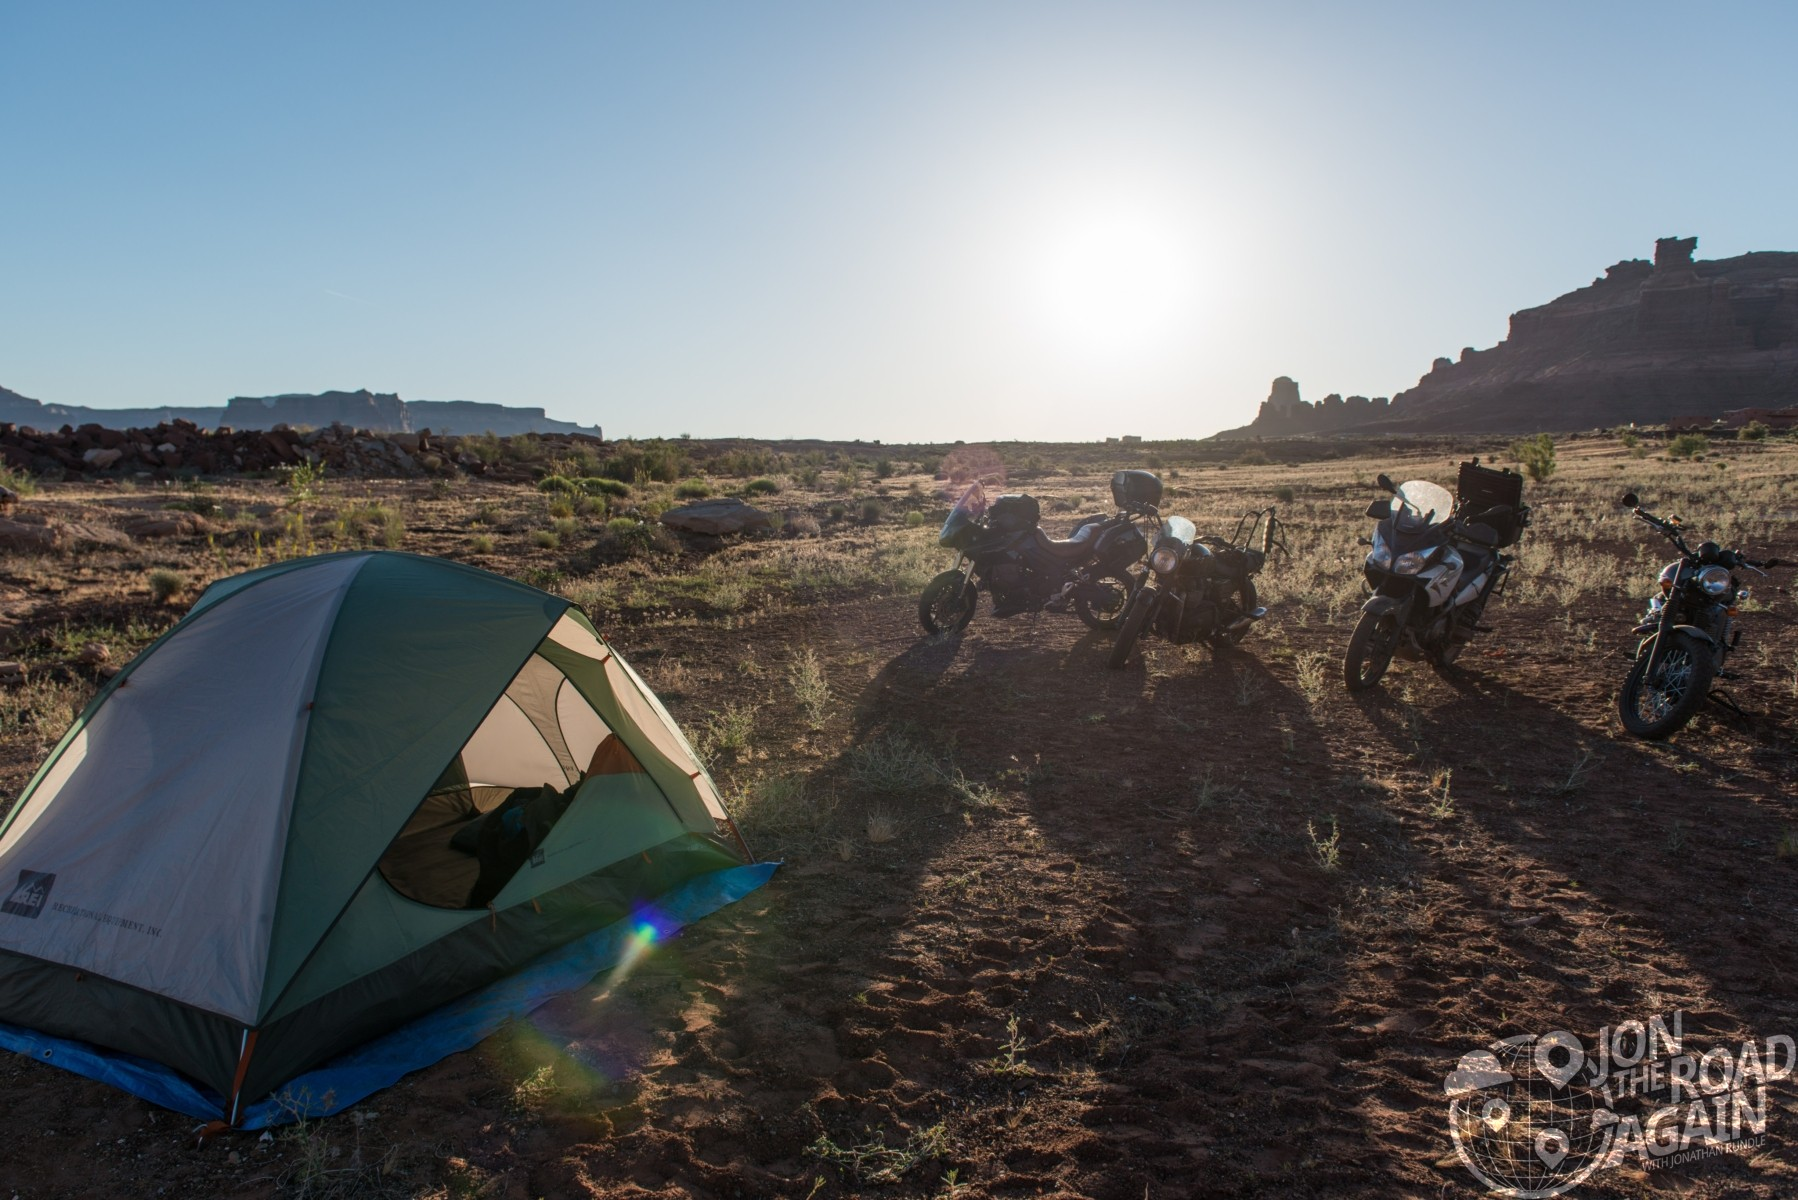 Motocamping morning at lake powell